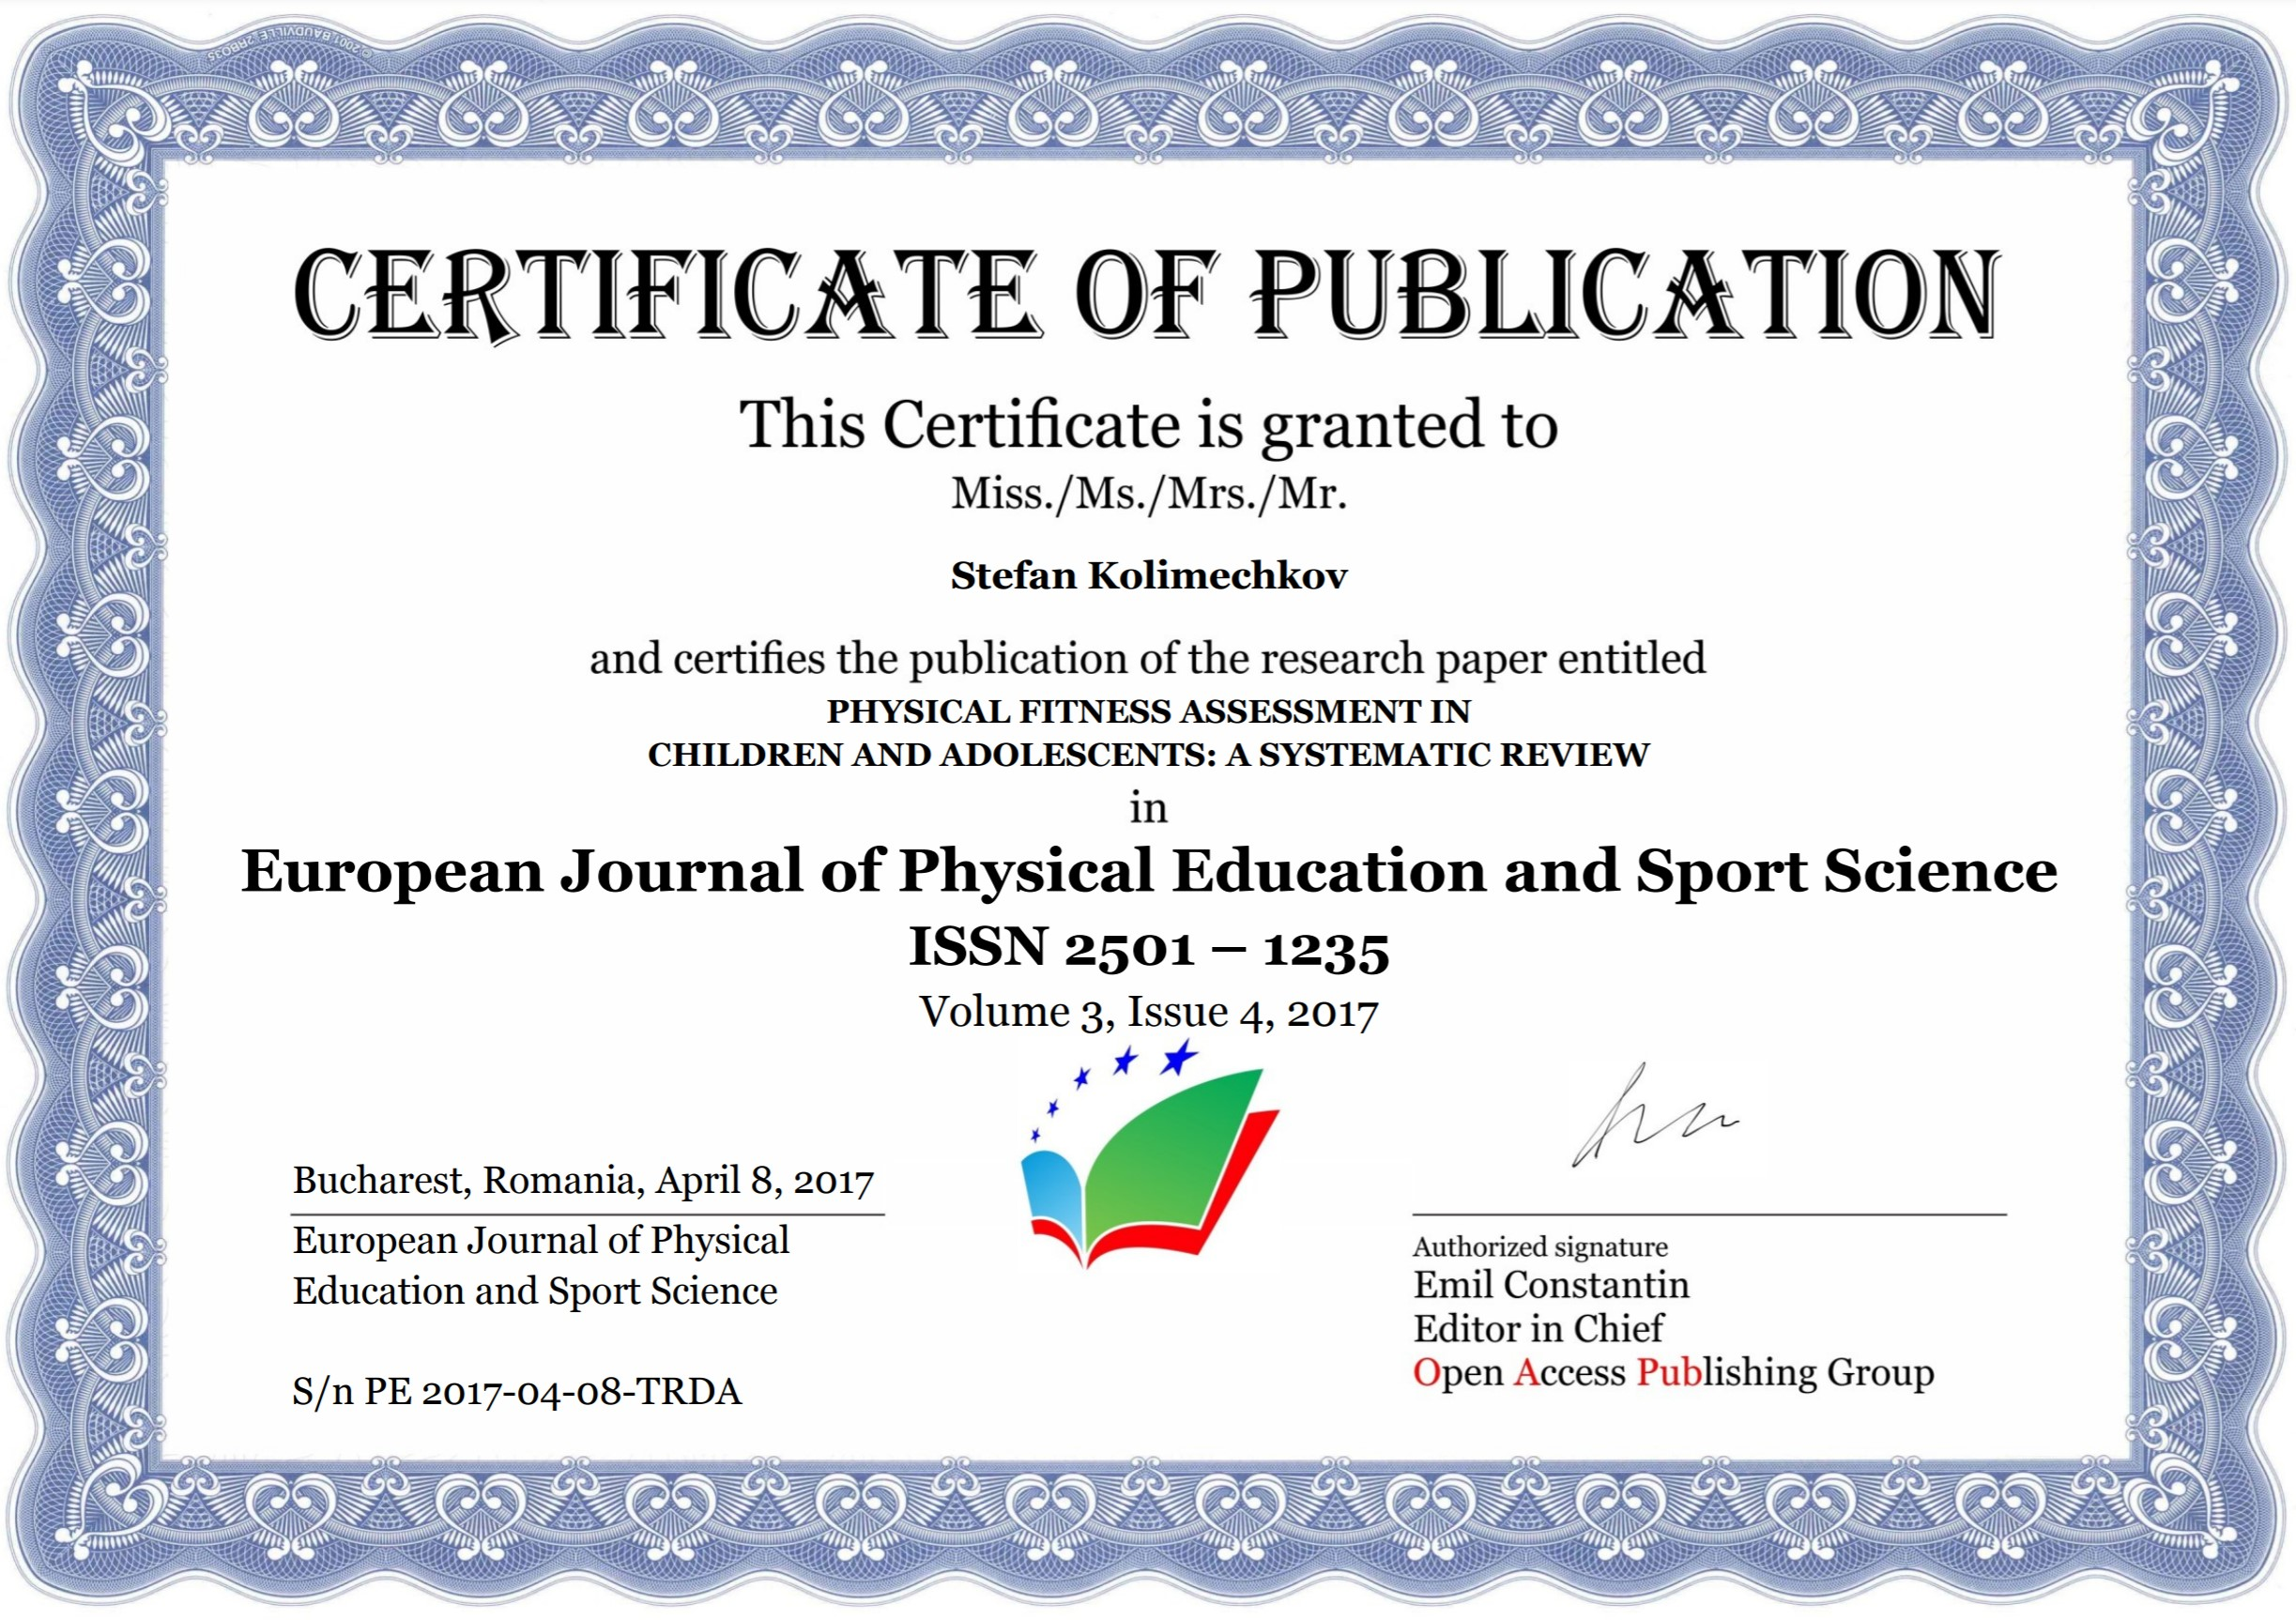 Physical fitness assessment in children and adolescents: a systematic review - Certificate of Publication